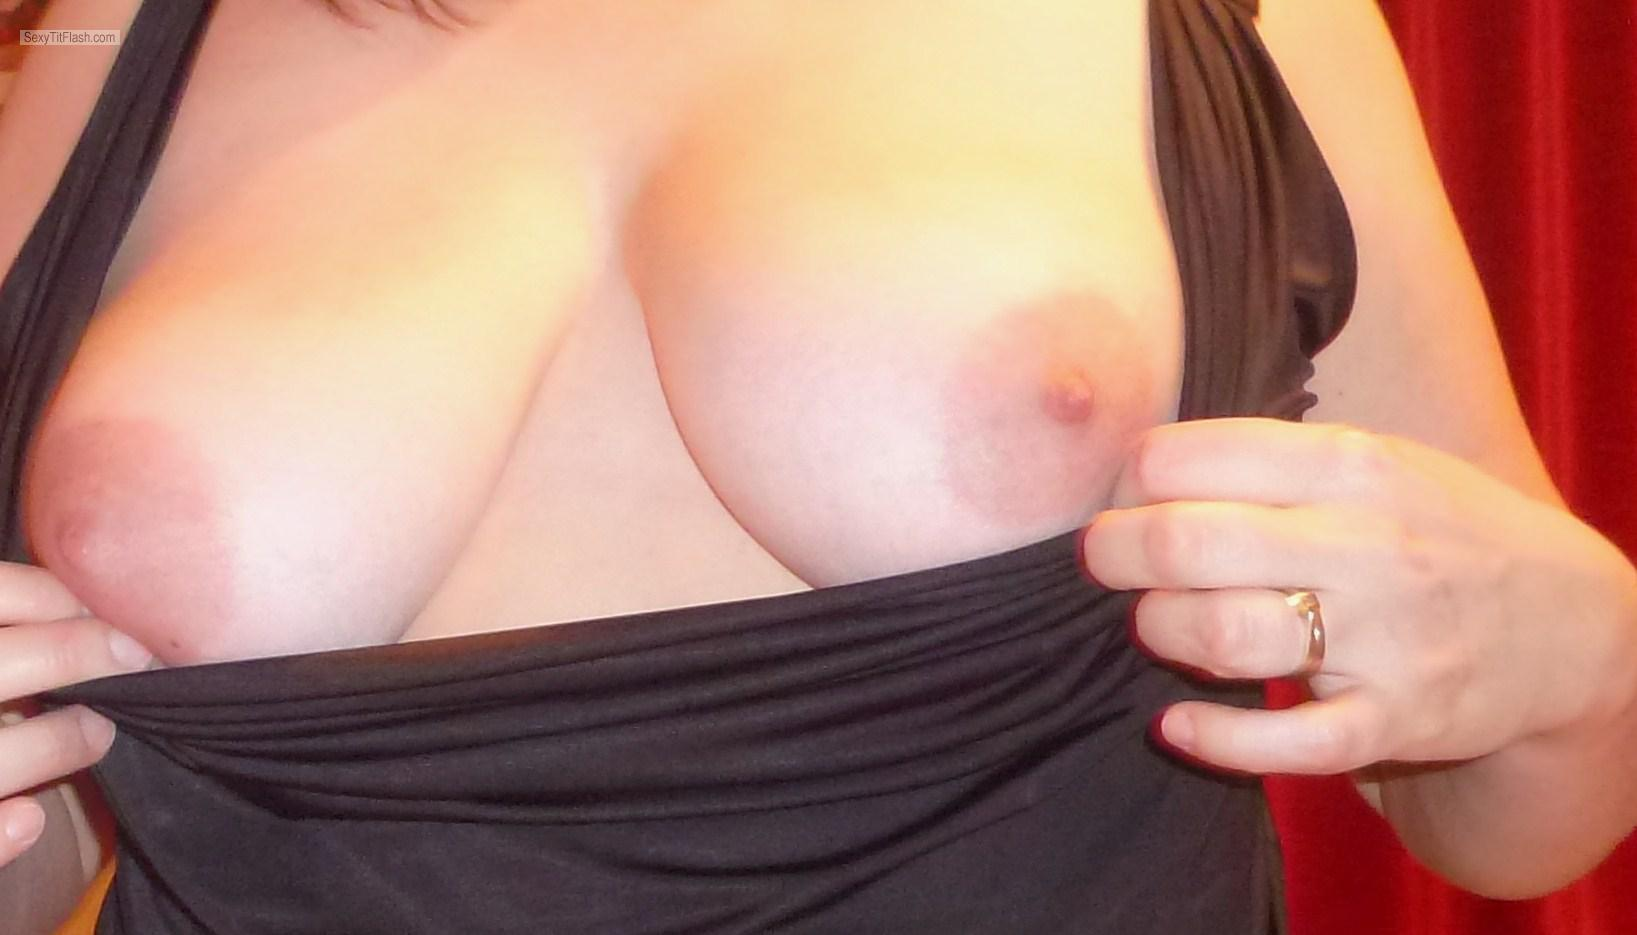 Medium Tits Of My Wife BP